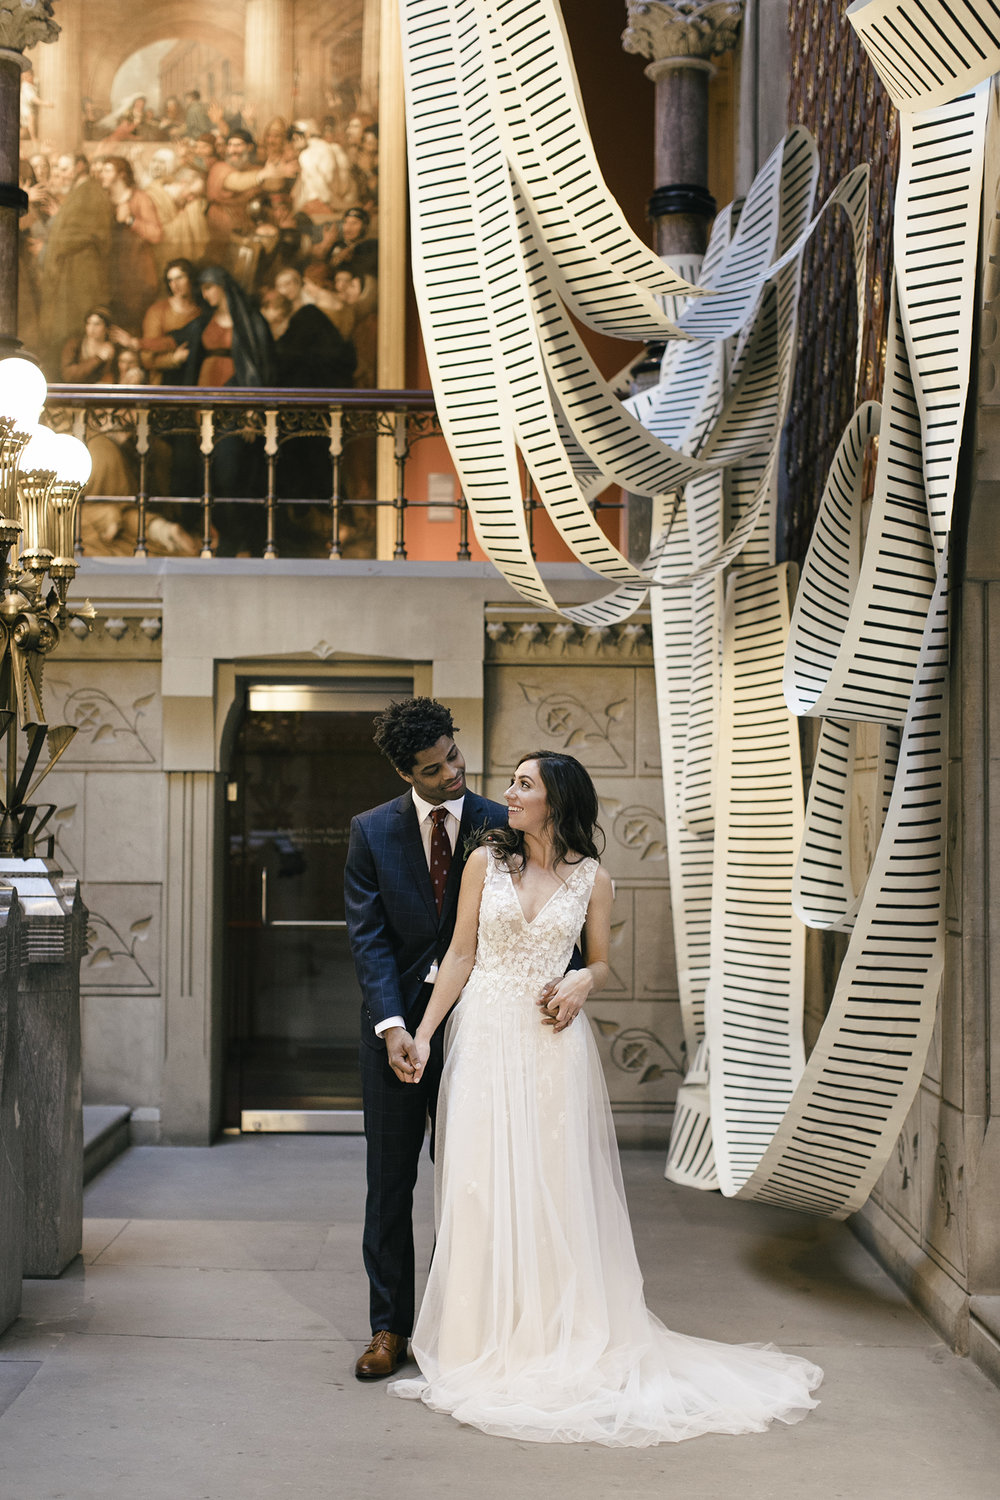 photography-wedding-weddings-natural-candid-pafa-pennsylvania academy-philadephia-philly-philadelphia wedding-mixed race-editorial-modern-fine-art-038.JPG